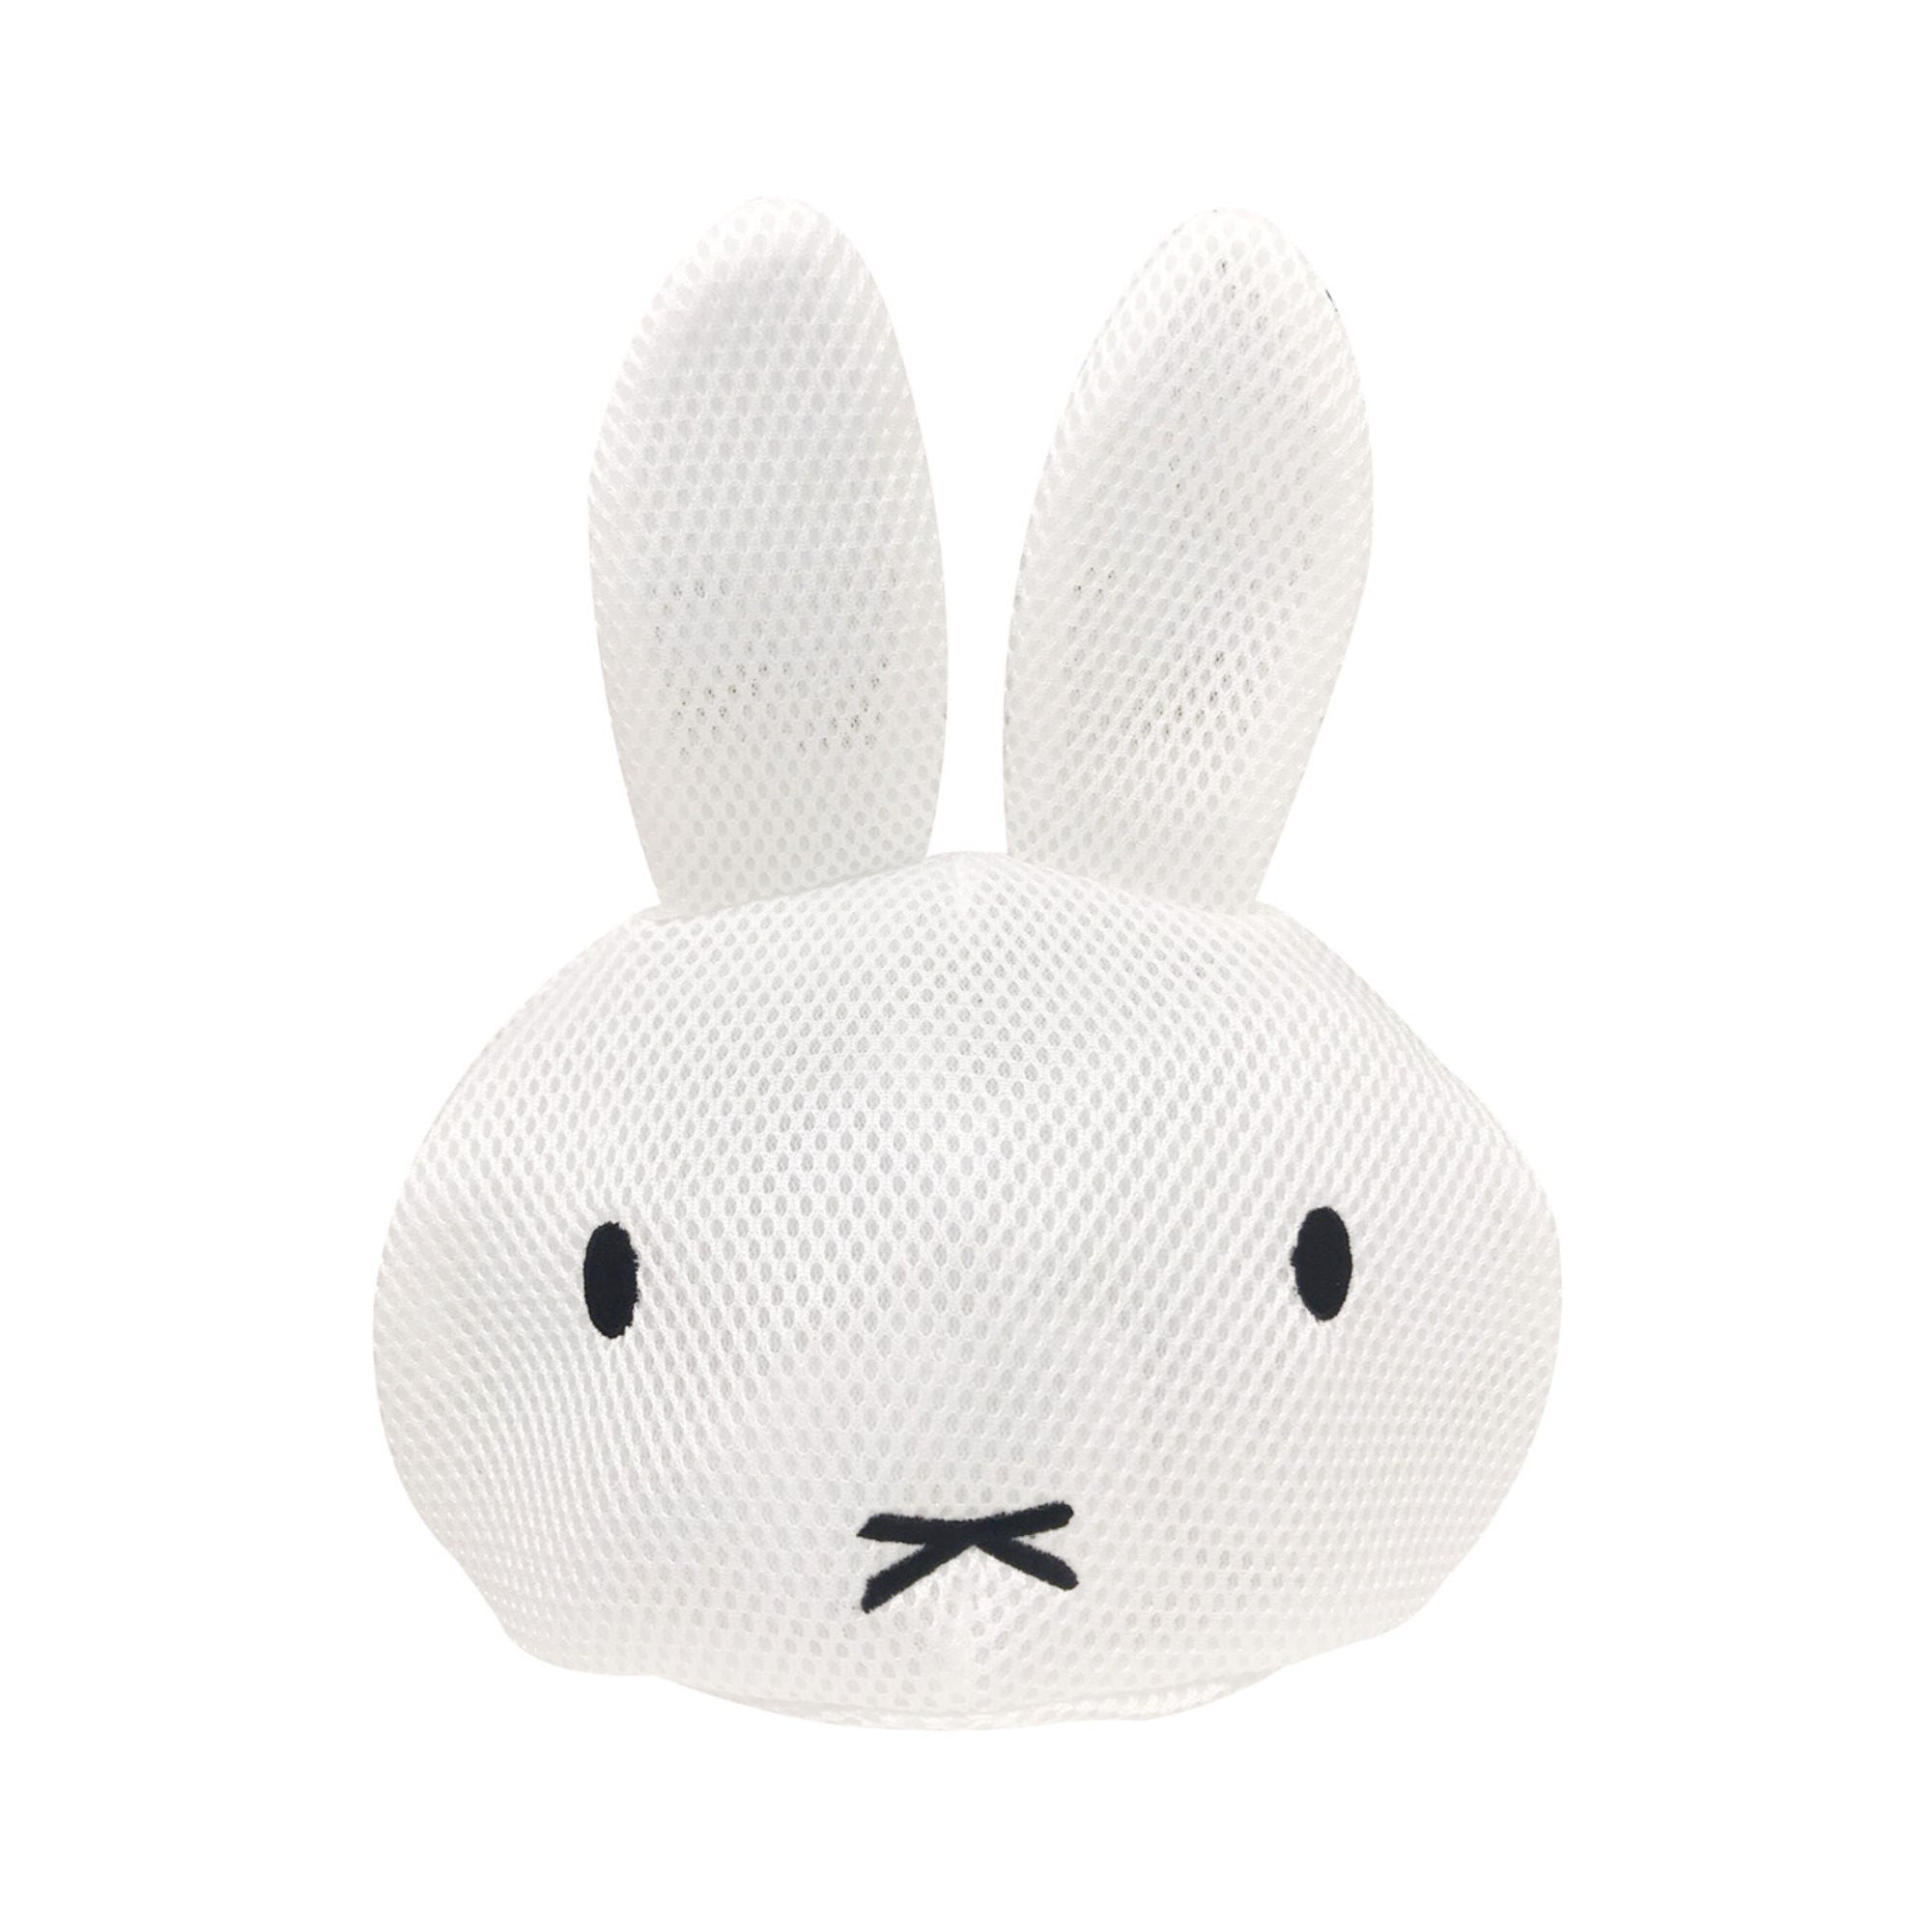 Dick Bruna Miffy Laundry Pouch , Miffy